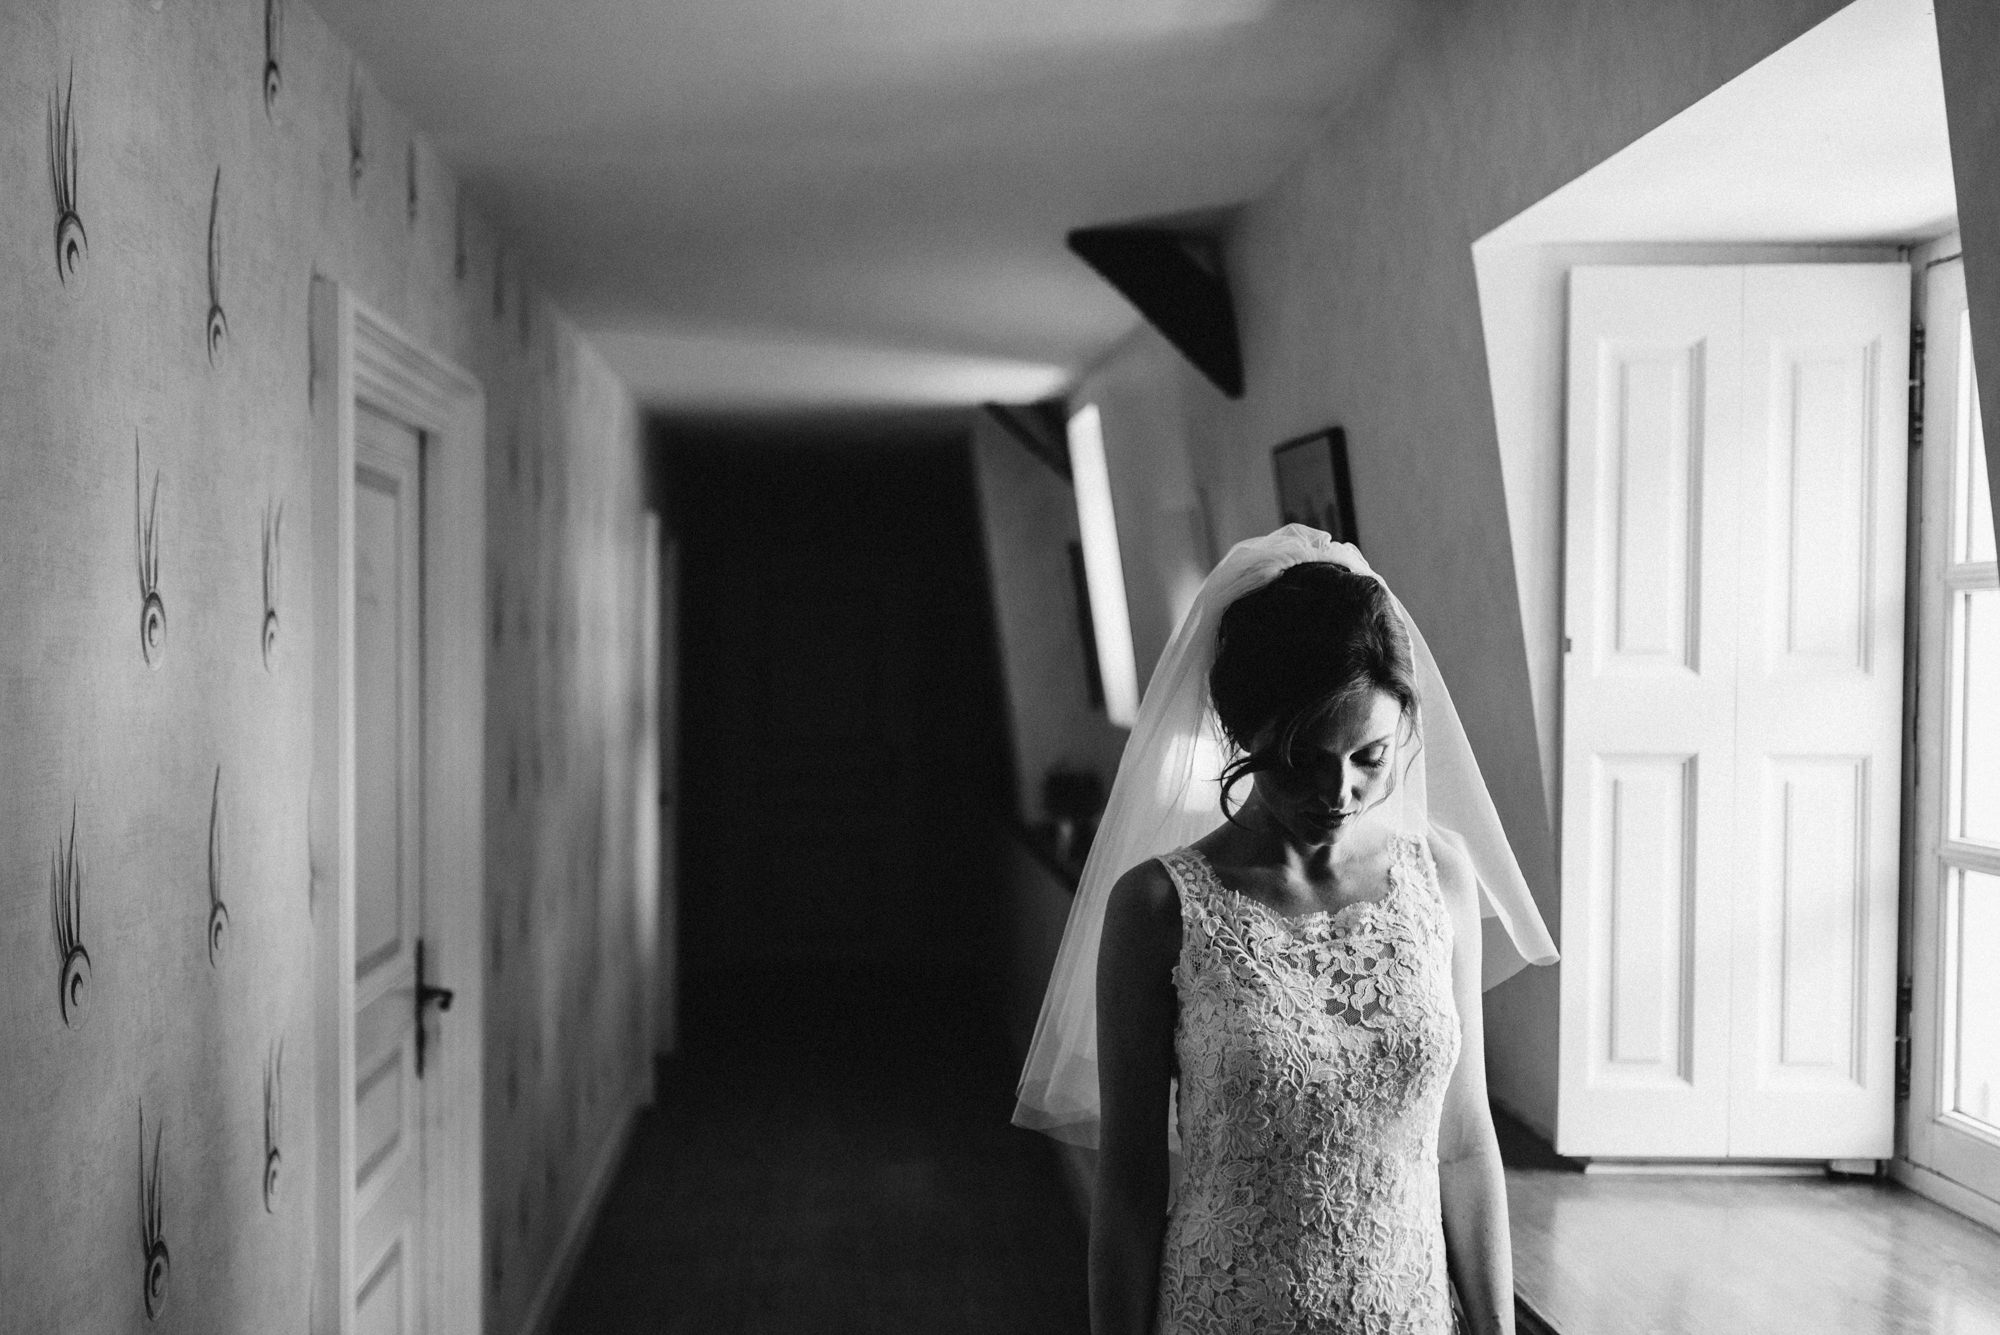 willybroussephotography-wedding-loirevalley-bidaudieres-laura-mathieu-32